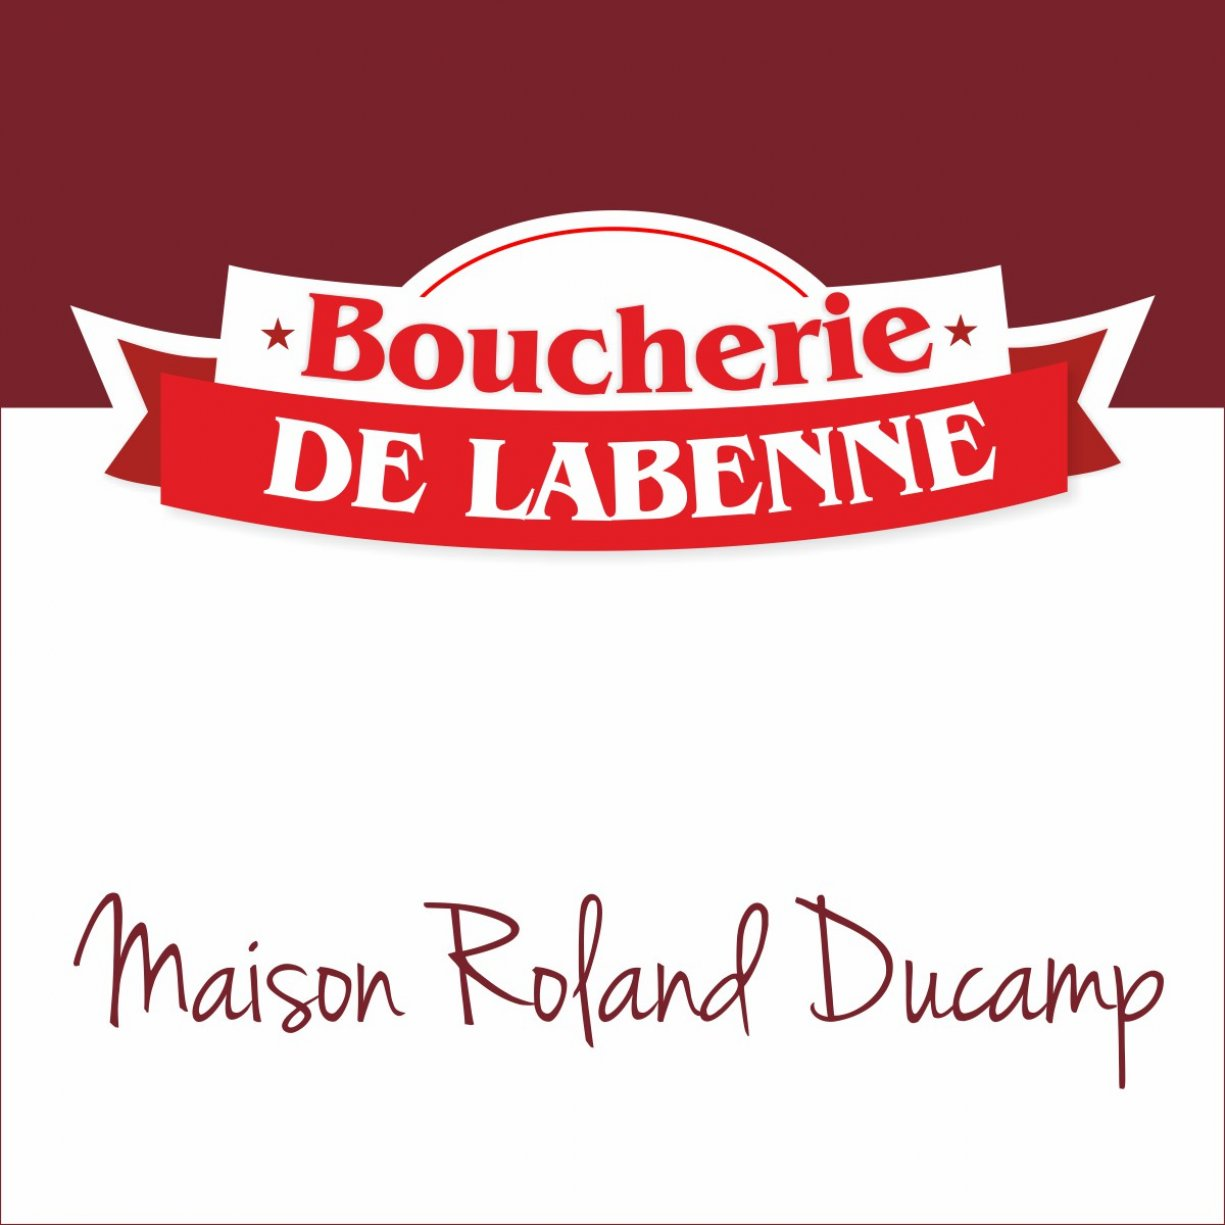 Boucherie de Labenne